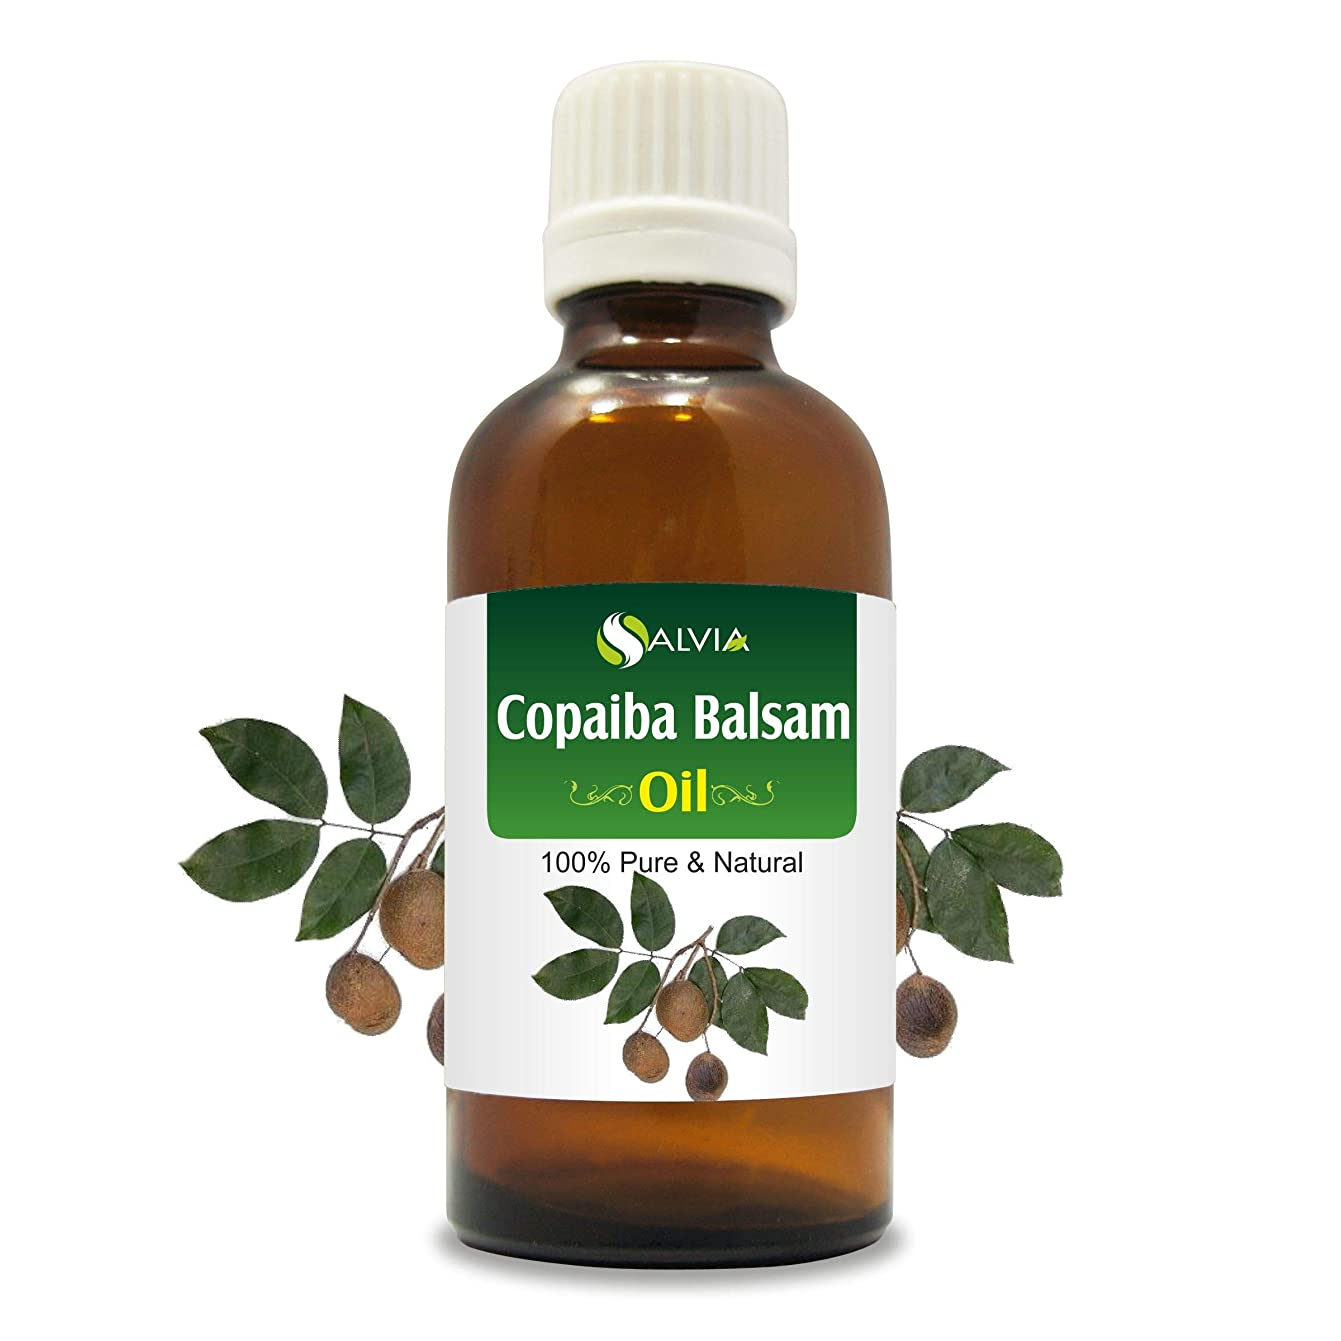 に対応裁判官ジャンプするCopaiba Balsam (Copaifera Reticulata Syn C. Officinalis) 100% Natural Pure Essential Oil 50ml